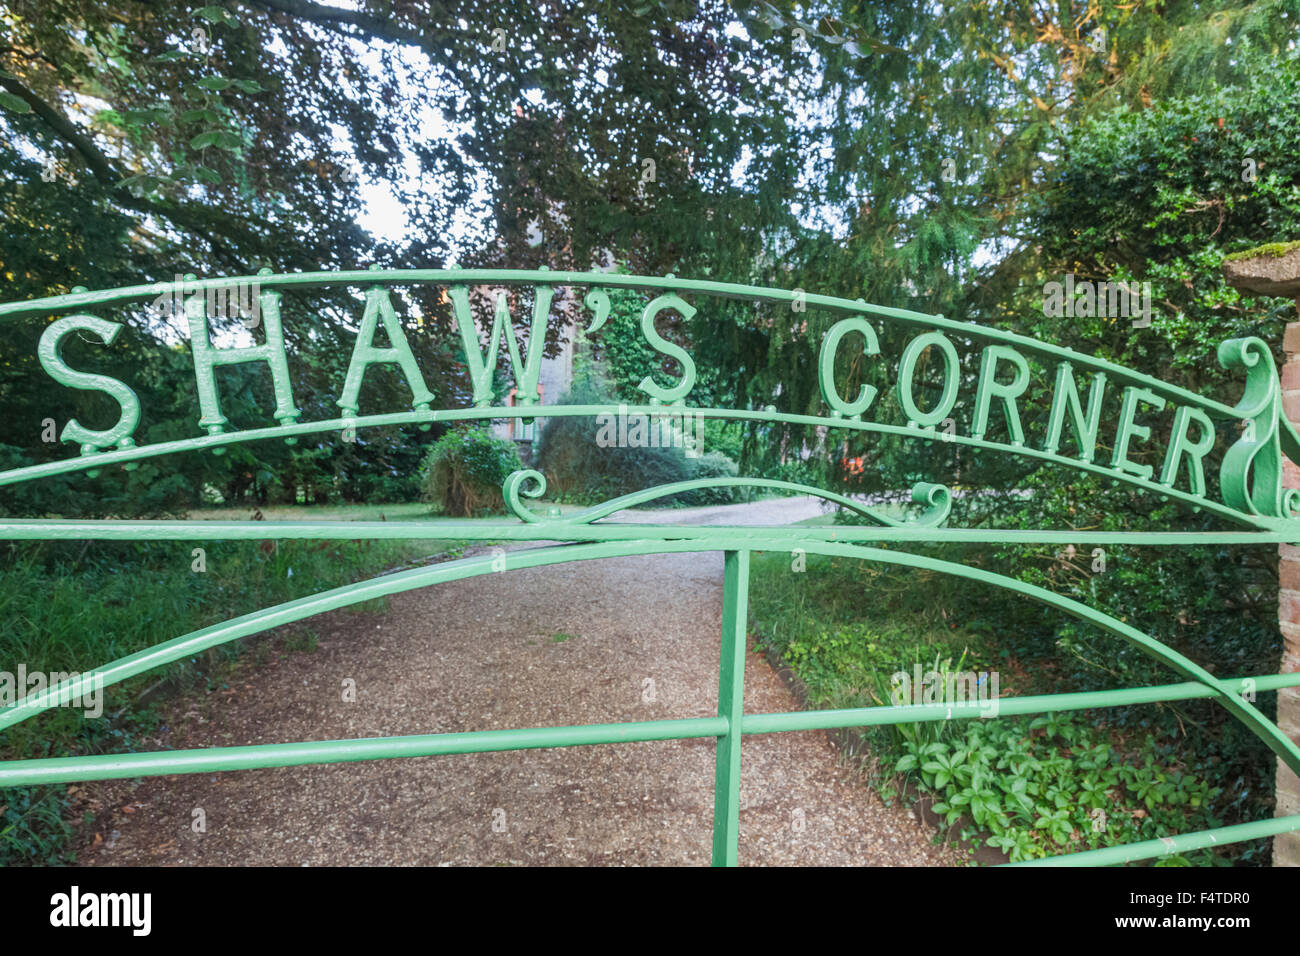 England, Hertfordshire, Ayot Saint Lawrence, Entrance Gate to Shaw's Corner, The Home of George Bernard Shaw, - Stock Image